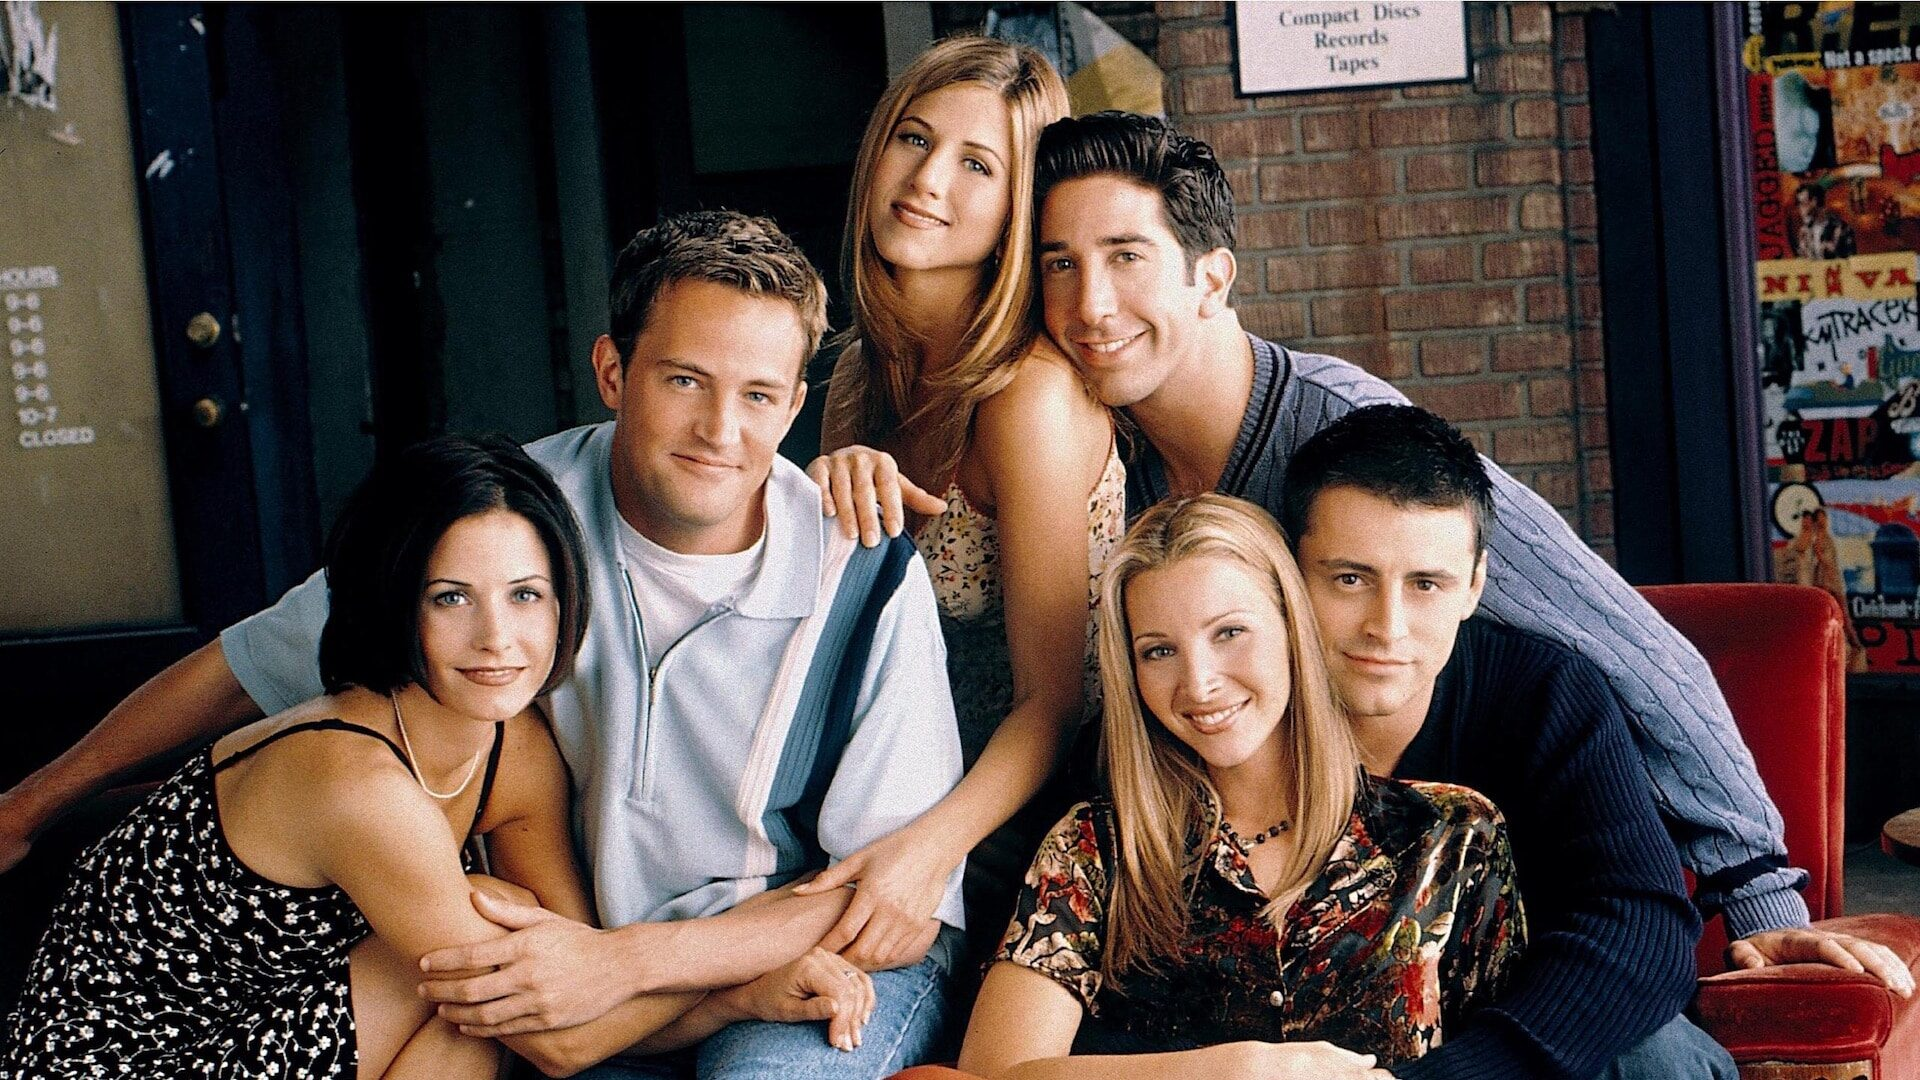 La reunion di Friends in tv è realtà, Jennifer Aniston lo av